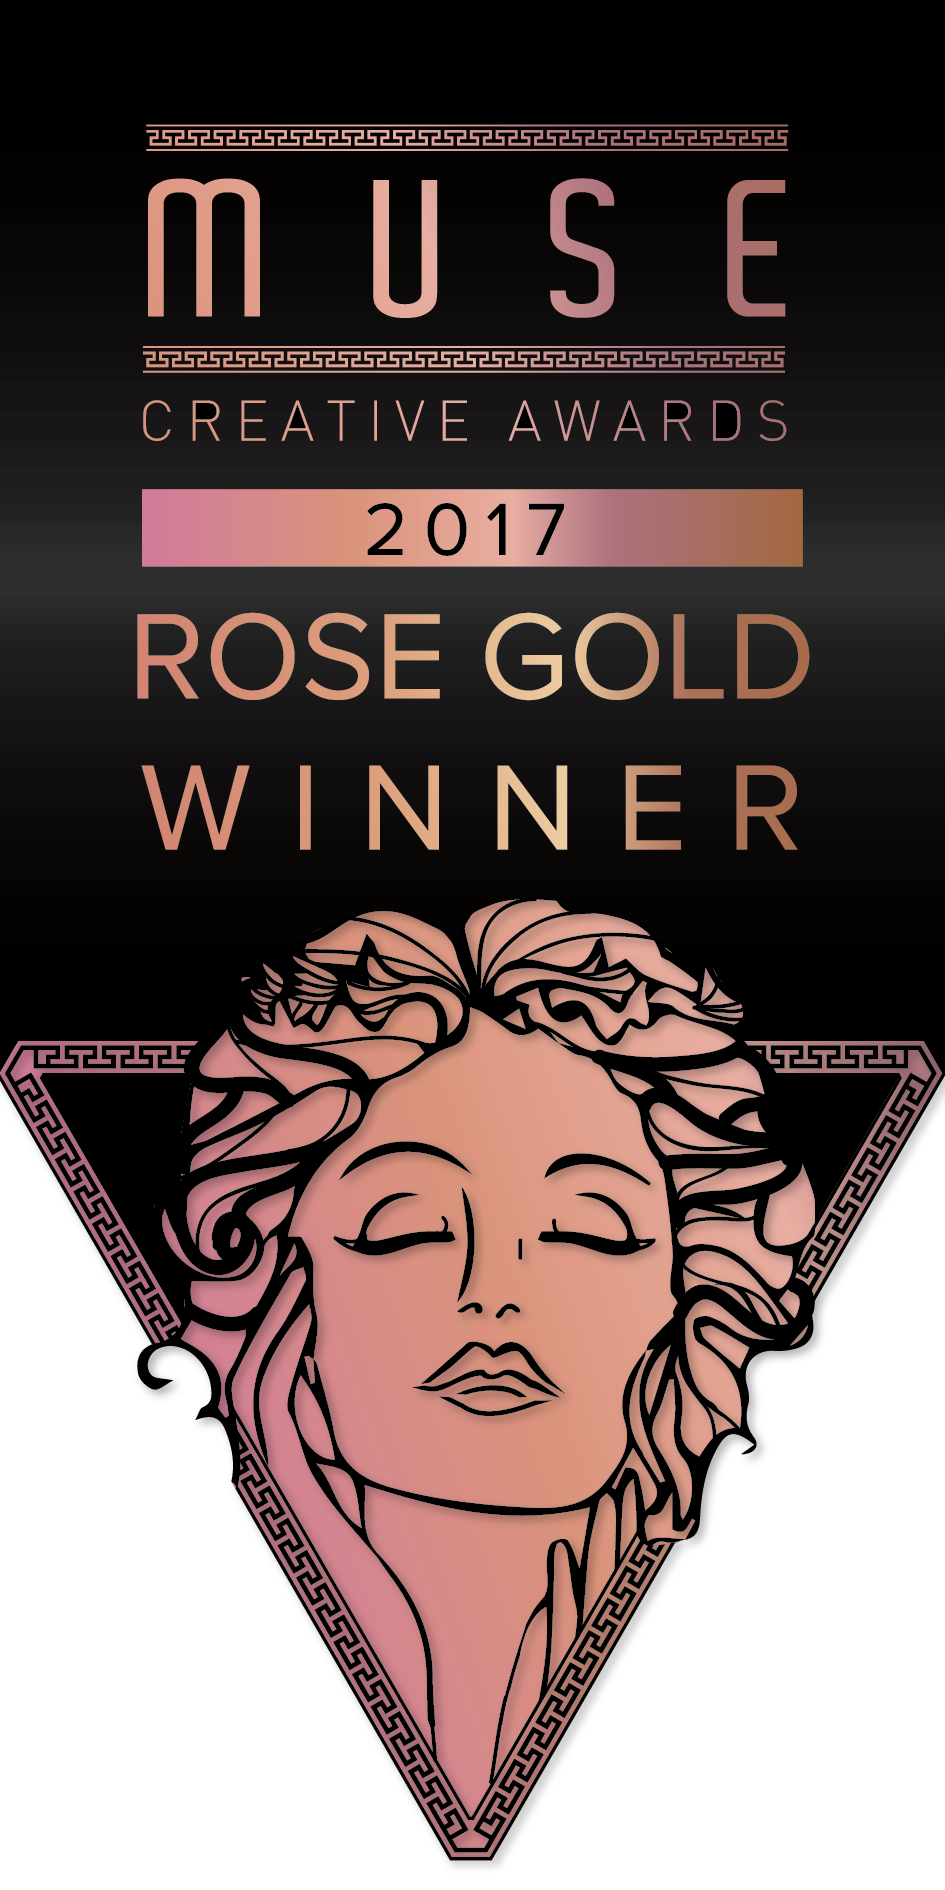 Muse Creative Awards 2017 Rose Gold Winner Geena Matuson 'The Girl Mirage' @ www.thegirlmirage.com.